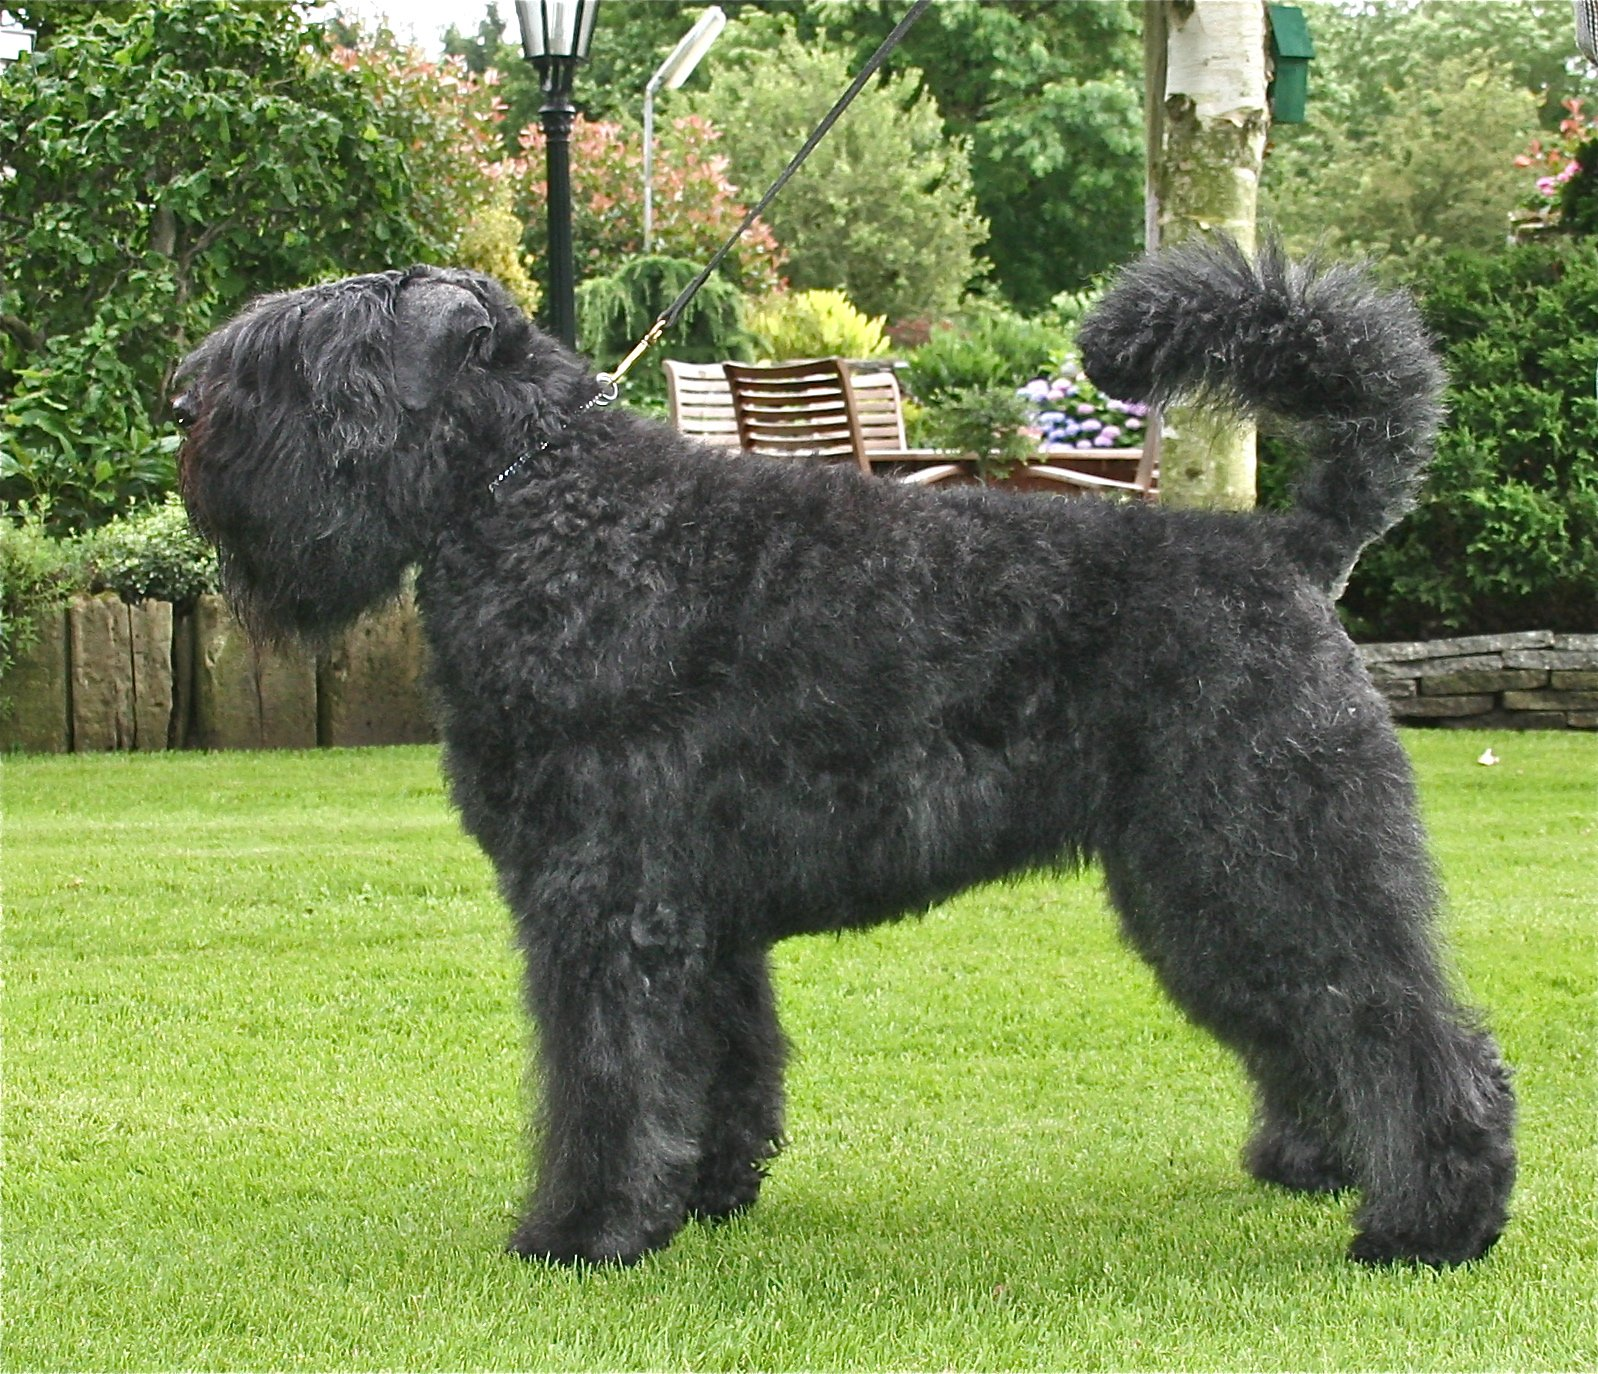 Dog breeds: Bouvier des Flanders Dog temperament